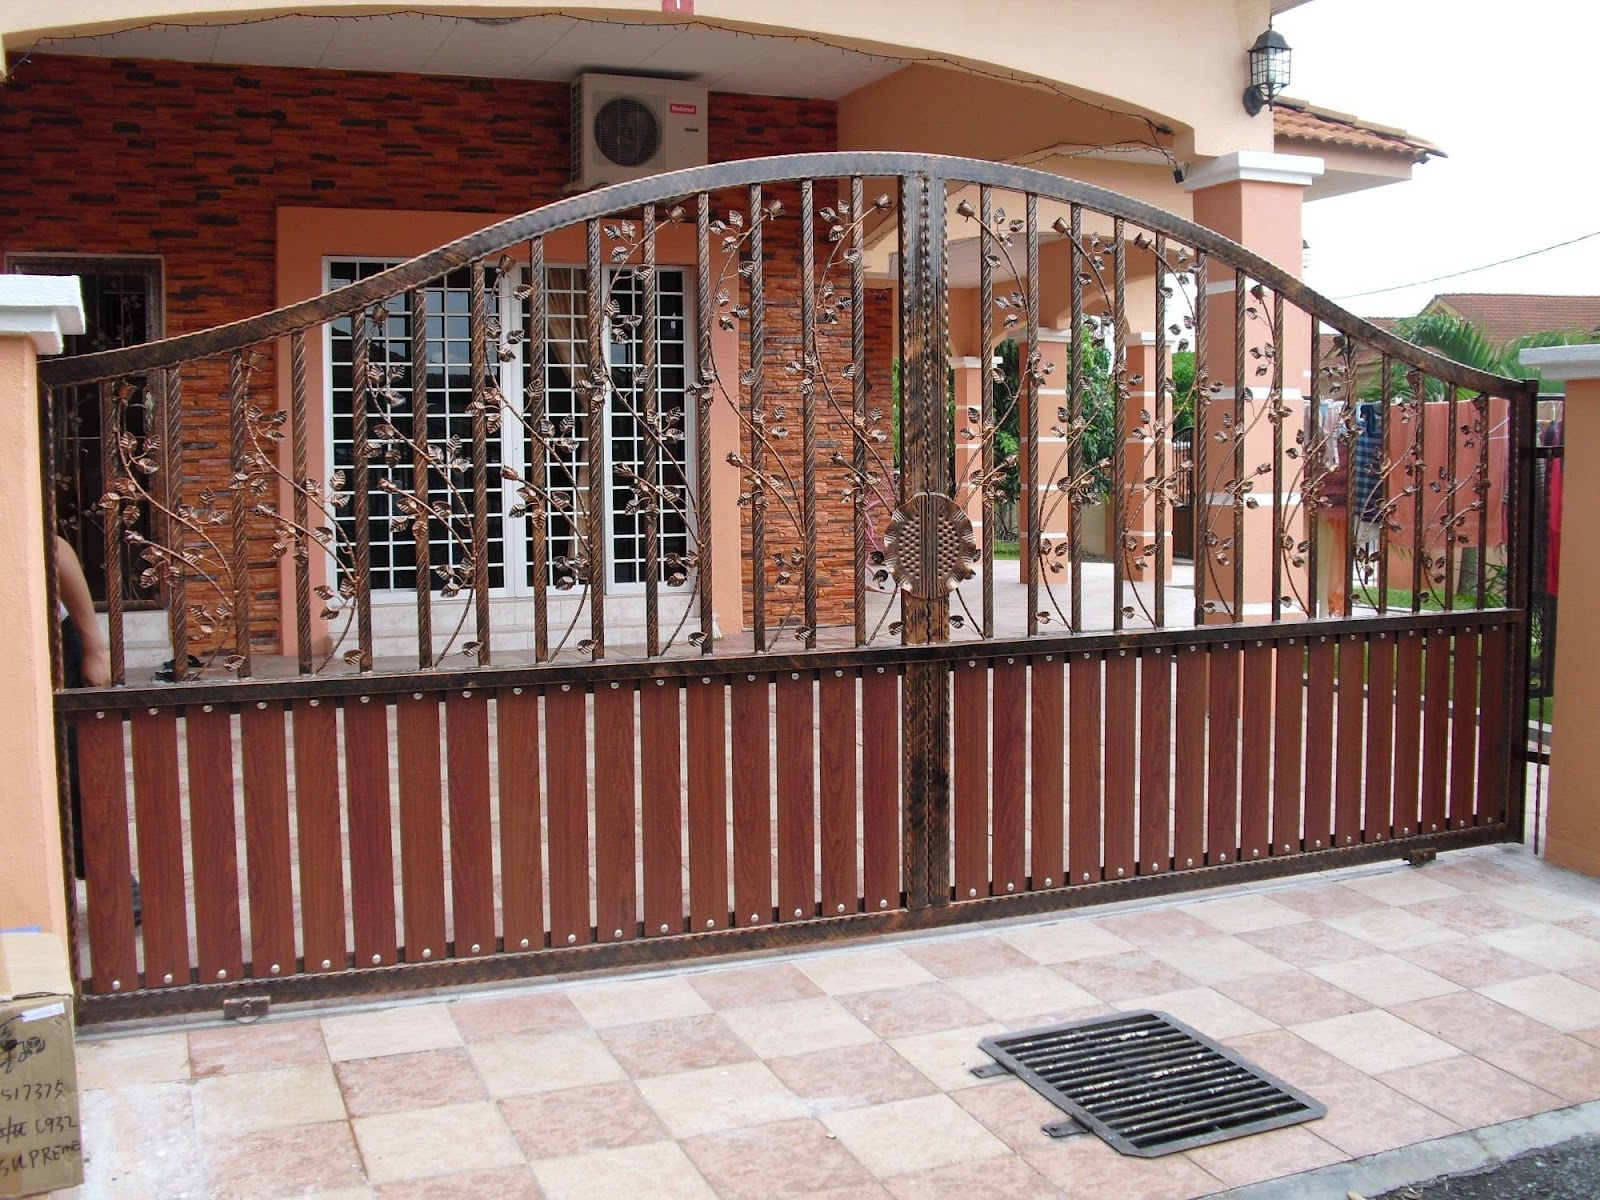 Modern homes iron main entrance gate designs ideas. | New home designs